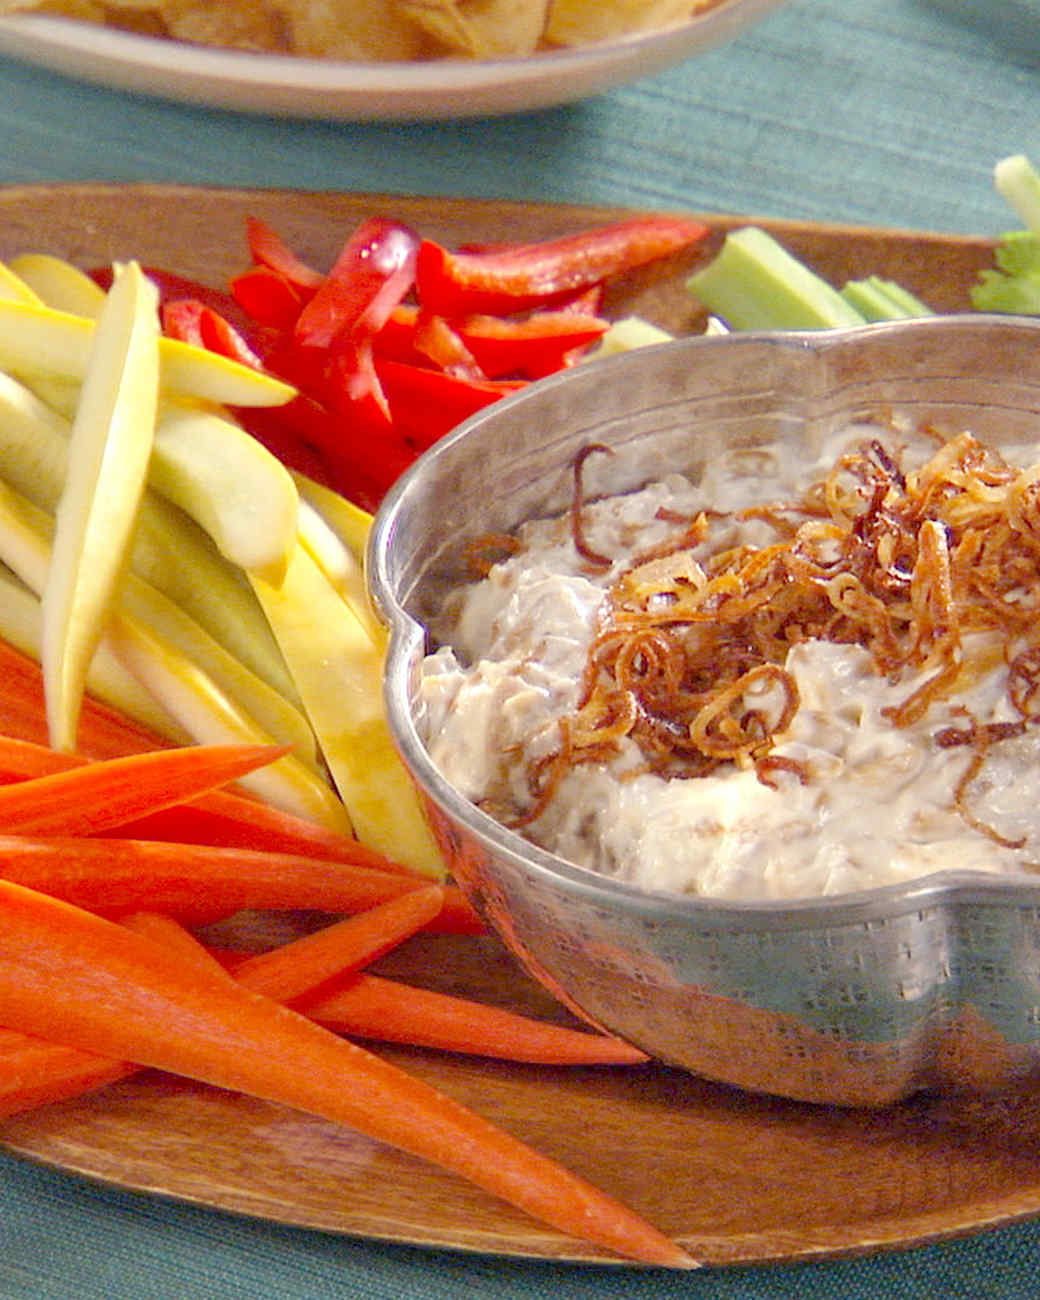 mh_1141_onion_and_bacon_dip.jpg